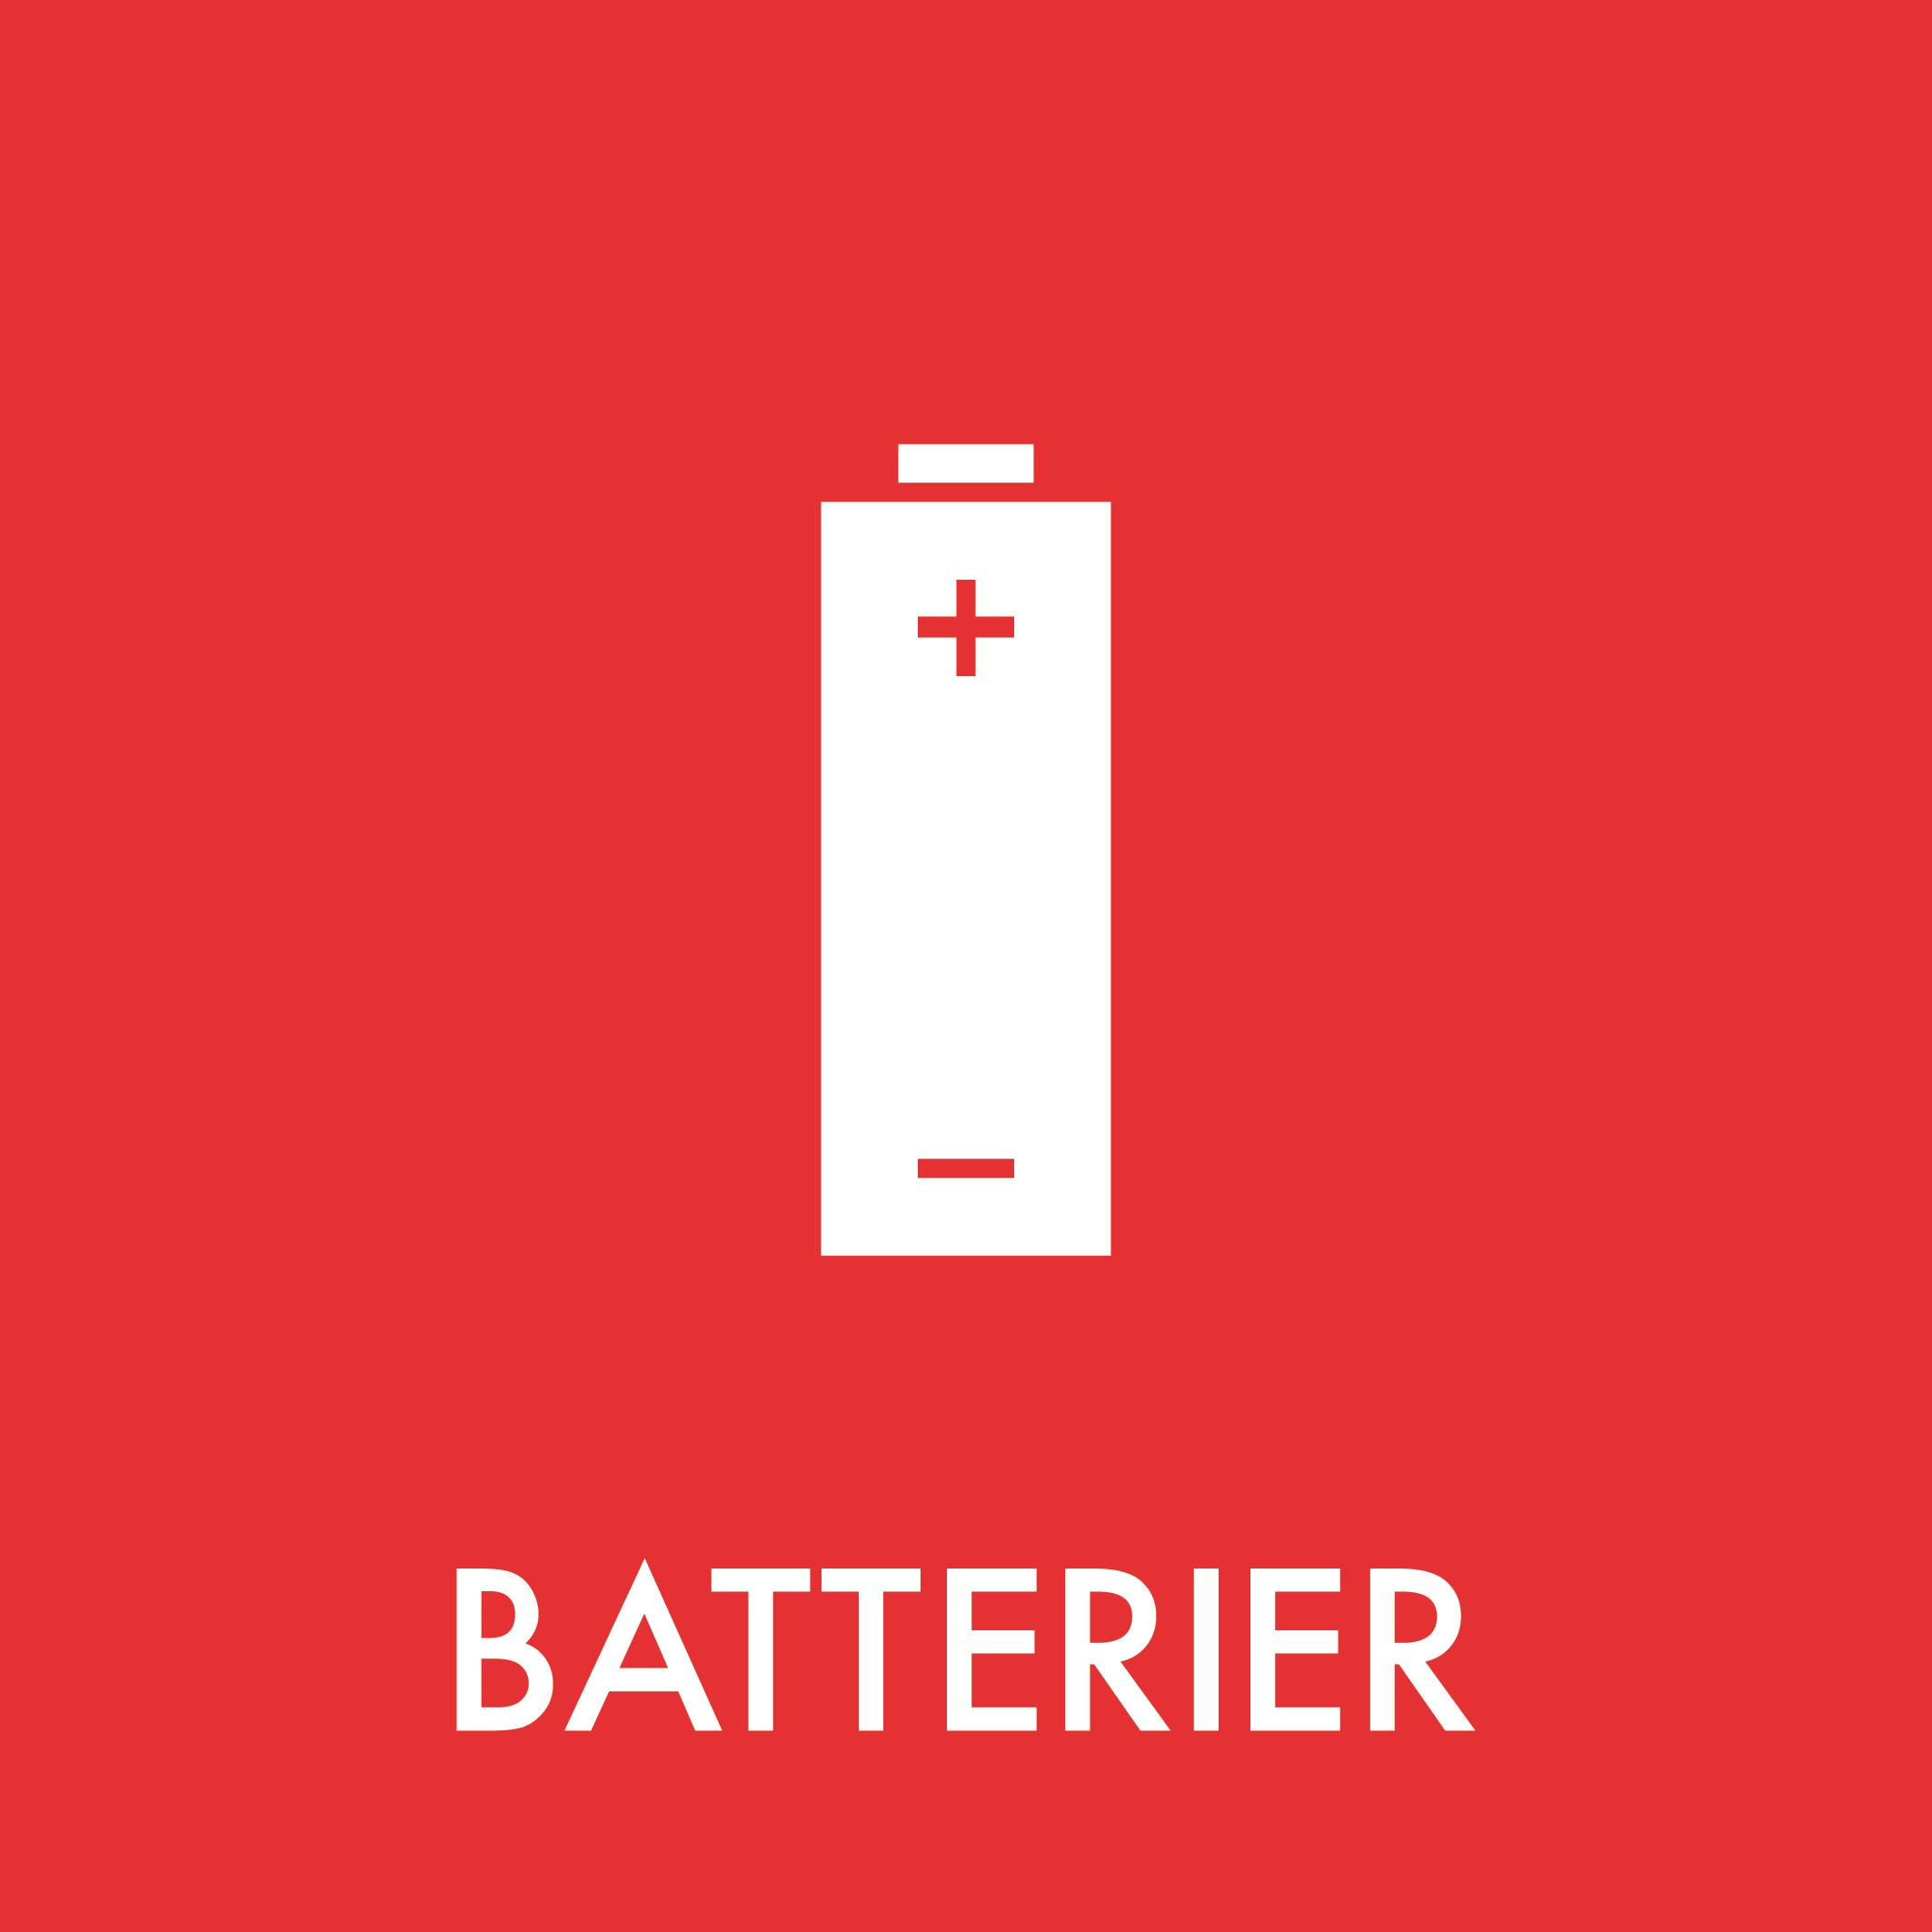 Batteripiktogram